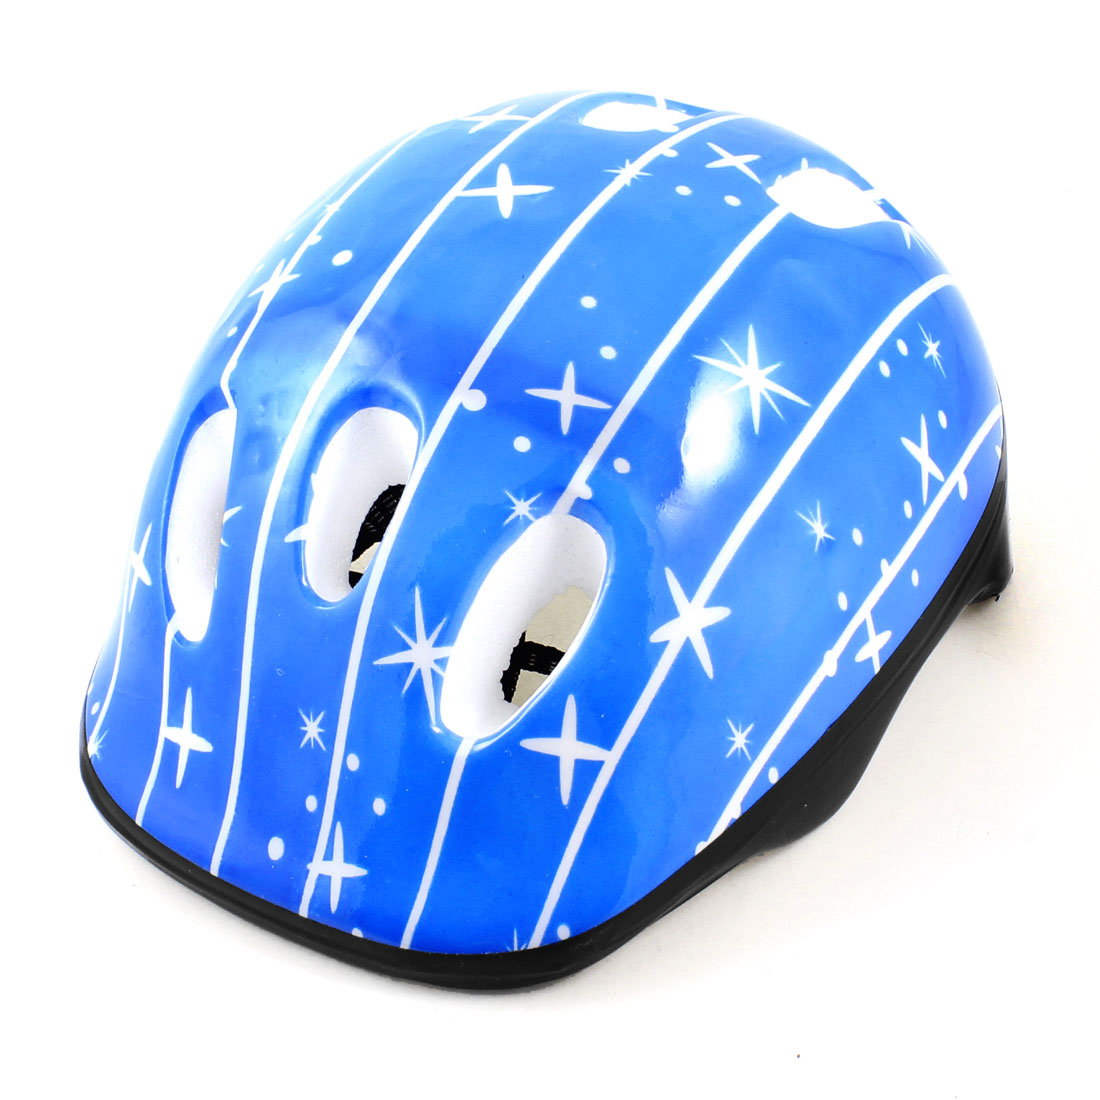 Adults Adjustable Strap Dot Pattern Foam Cycling Bike Helmet Blue